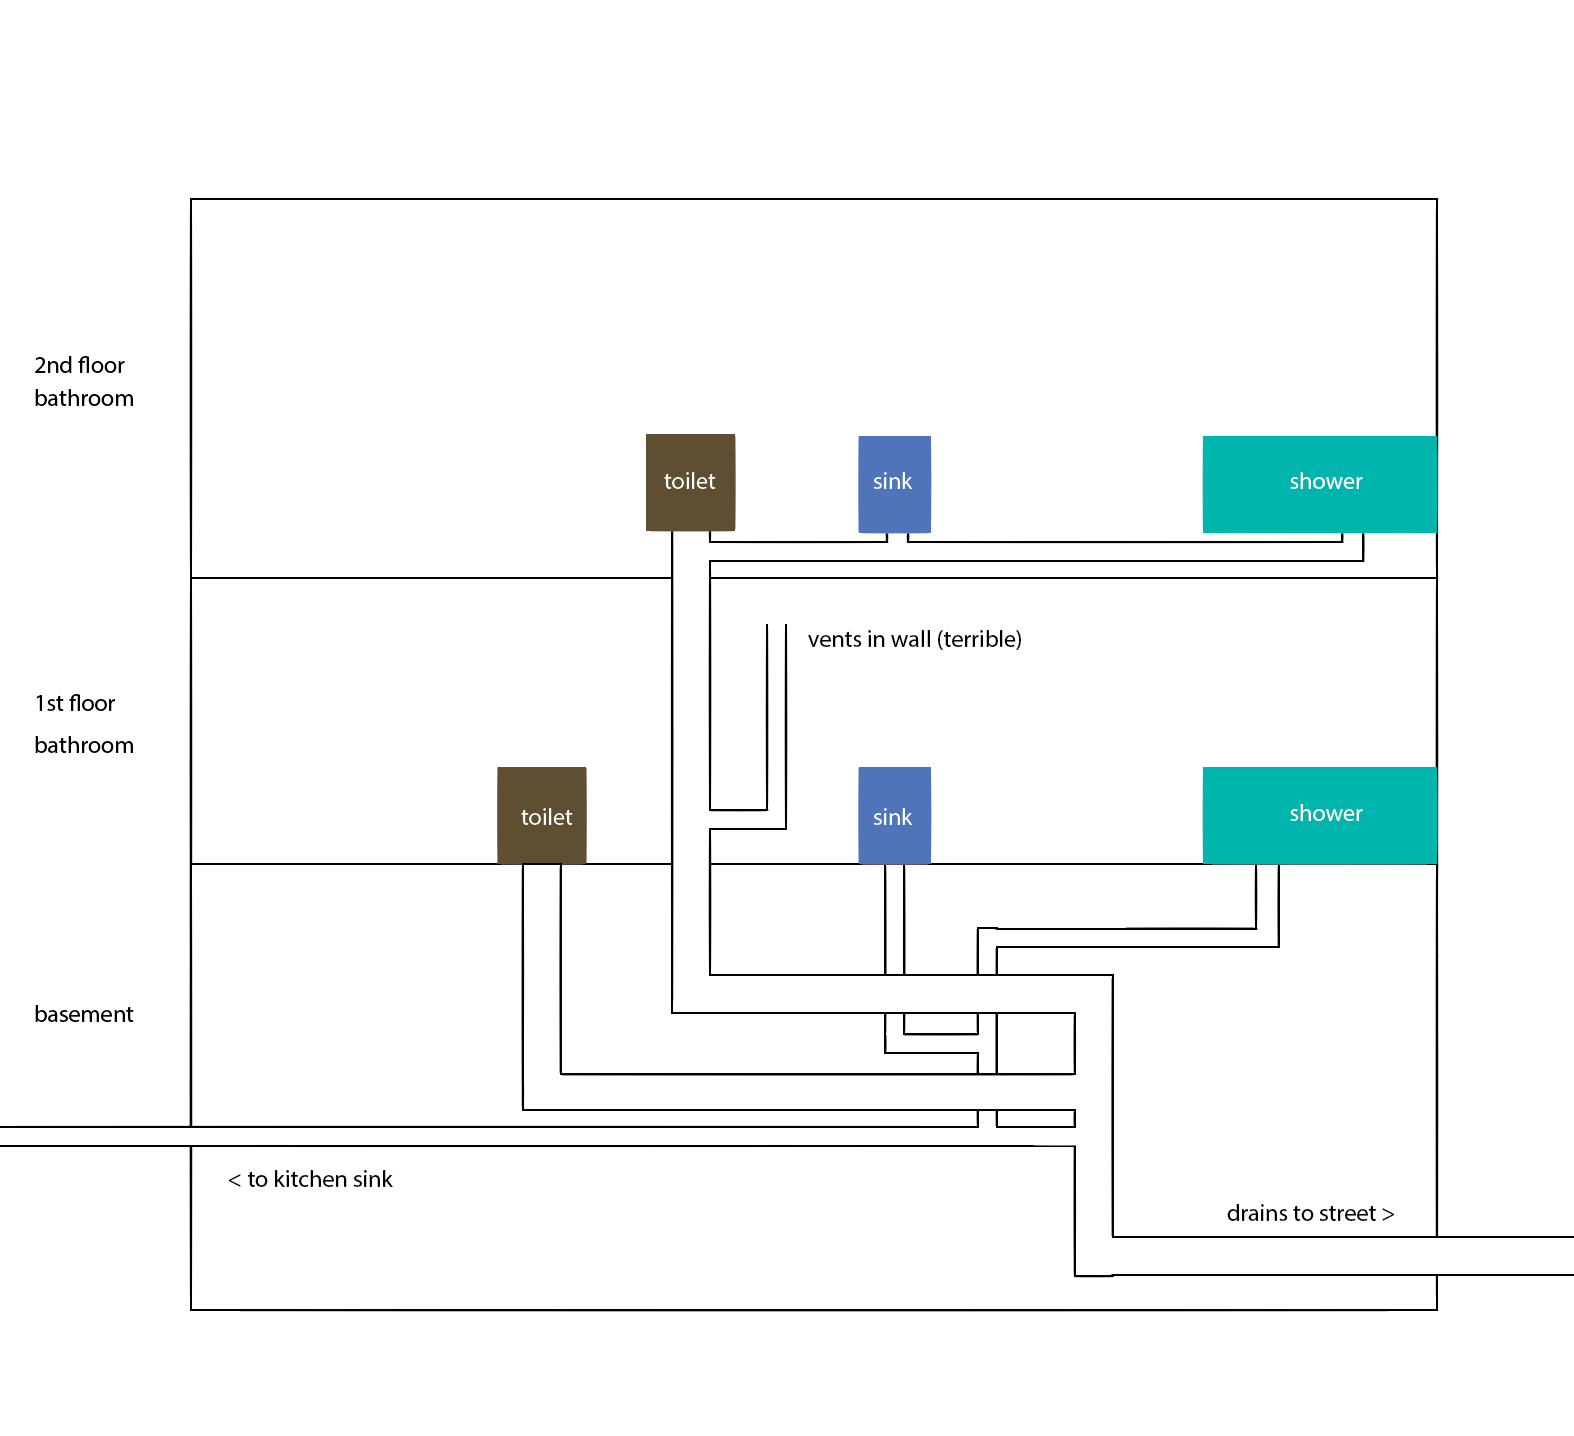 bathroom plumbing vent stack diagram telephone extension cable wiring adding in missing vents terry love